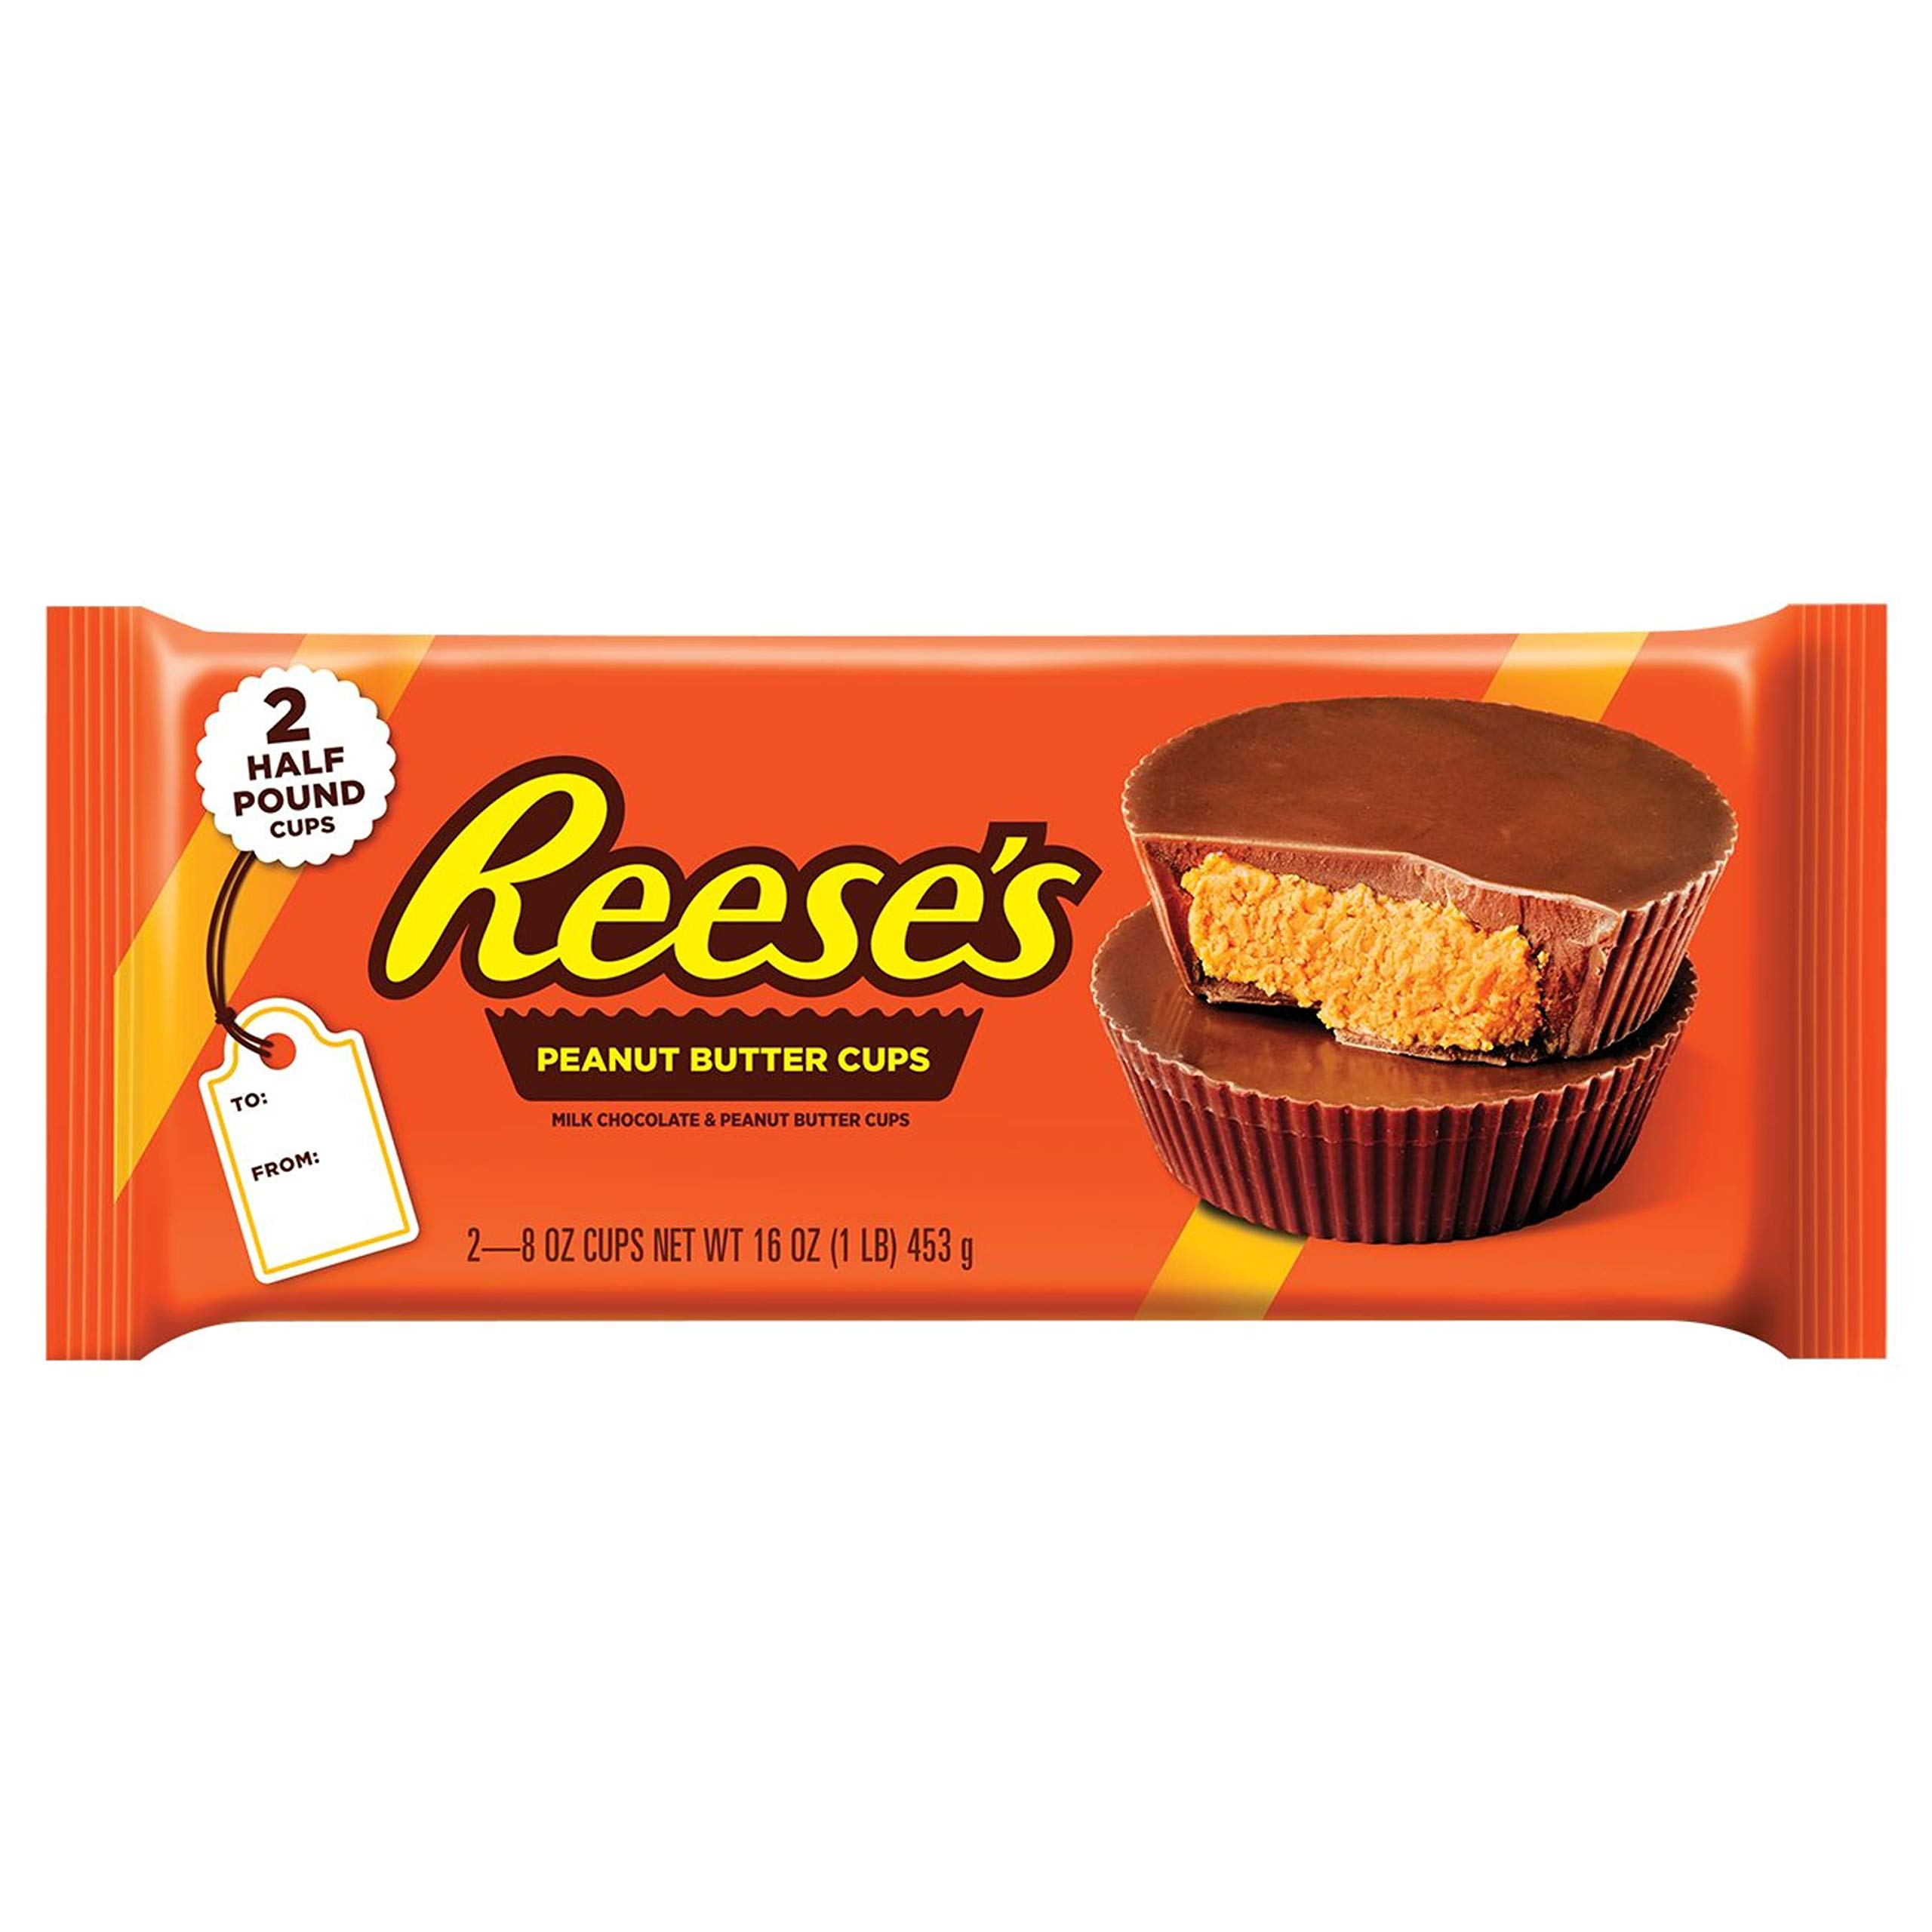 Reese's Milk Cups Candy Easter Gift Lb. Pack, Peanut Butter and Chocolate, 16 Ounce